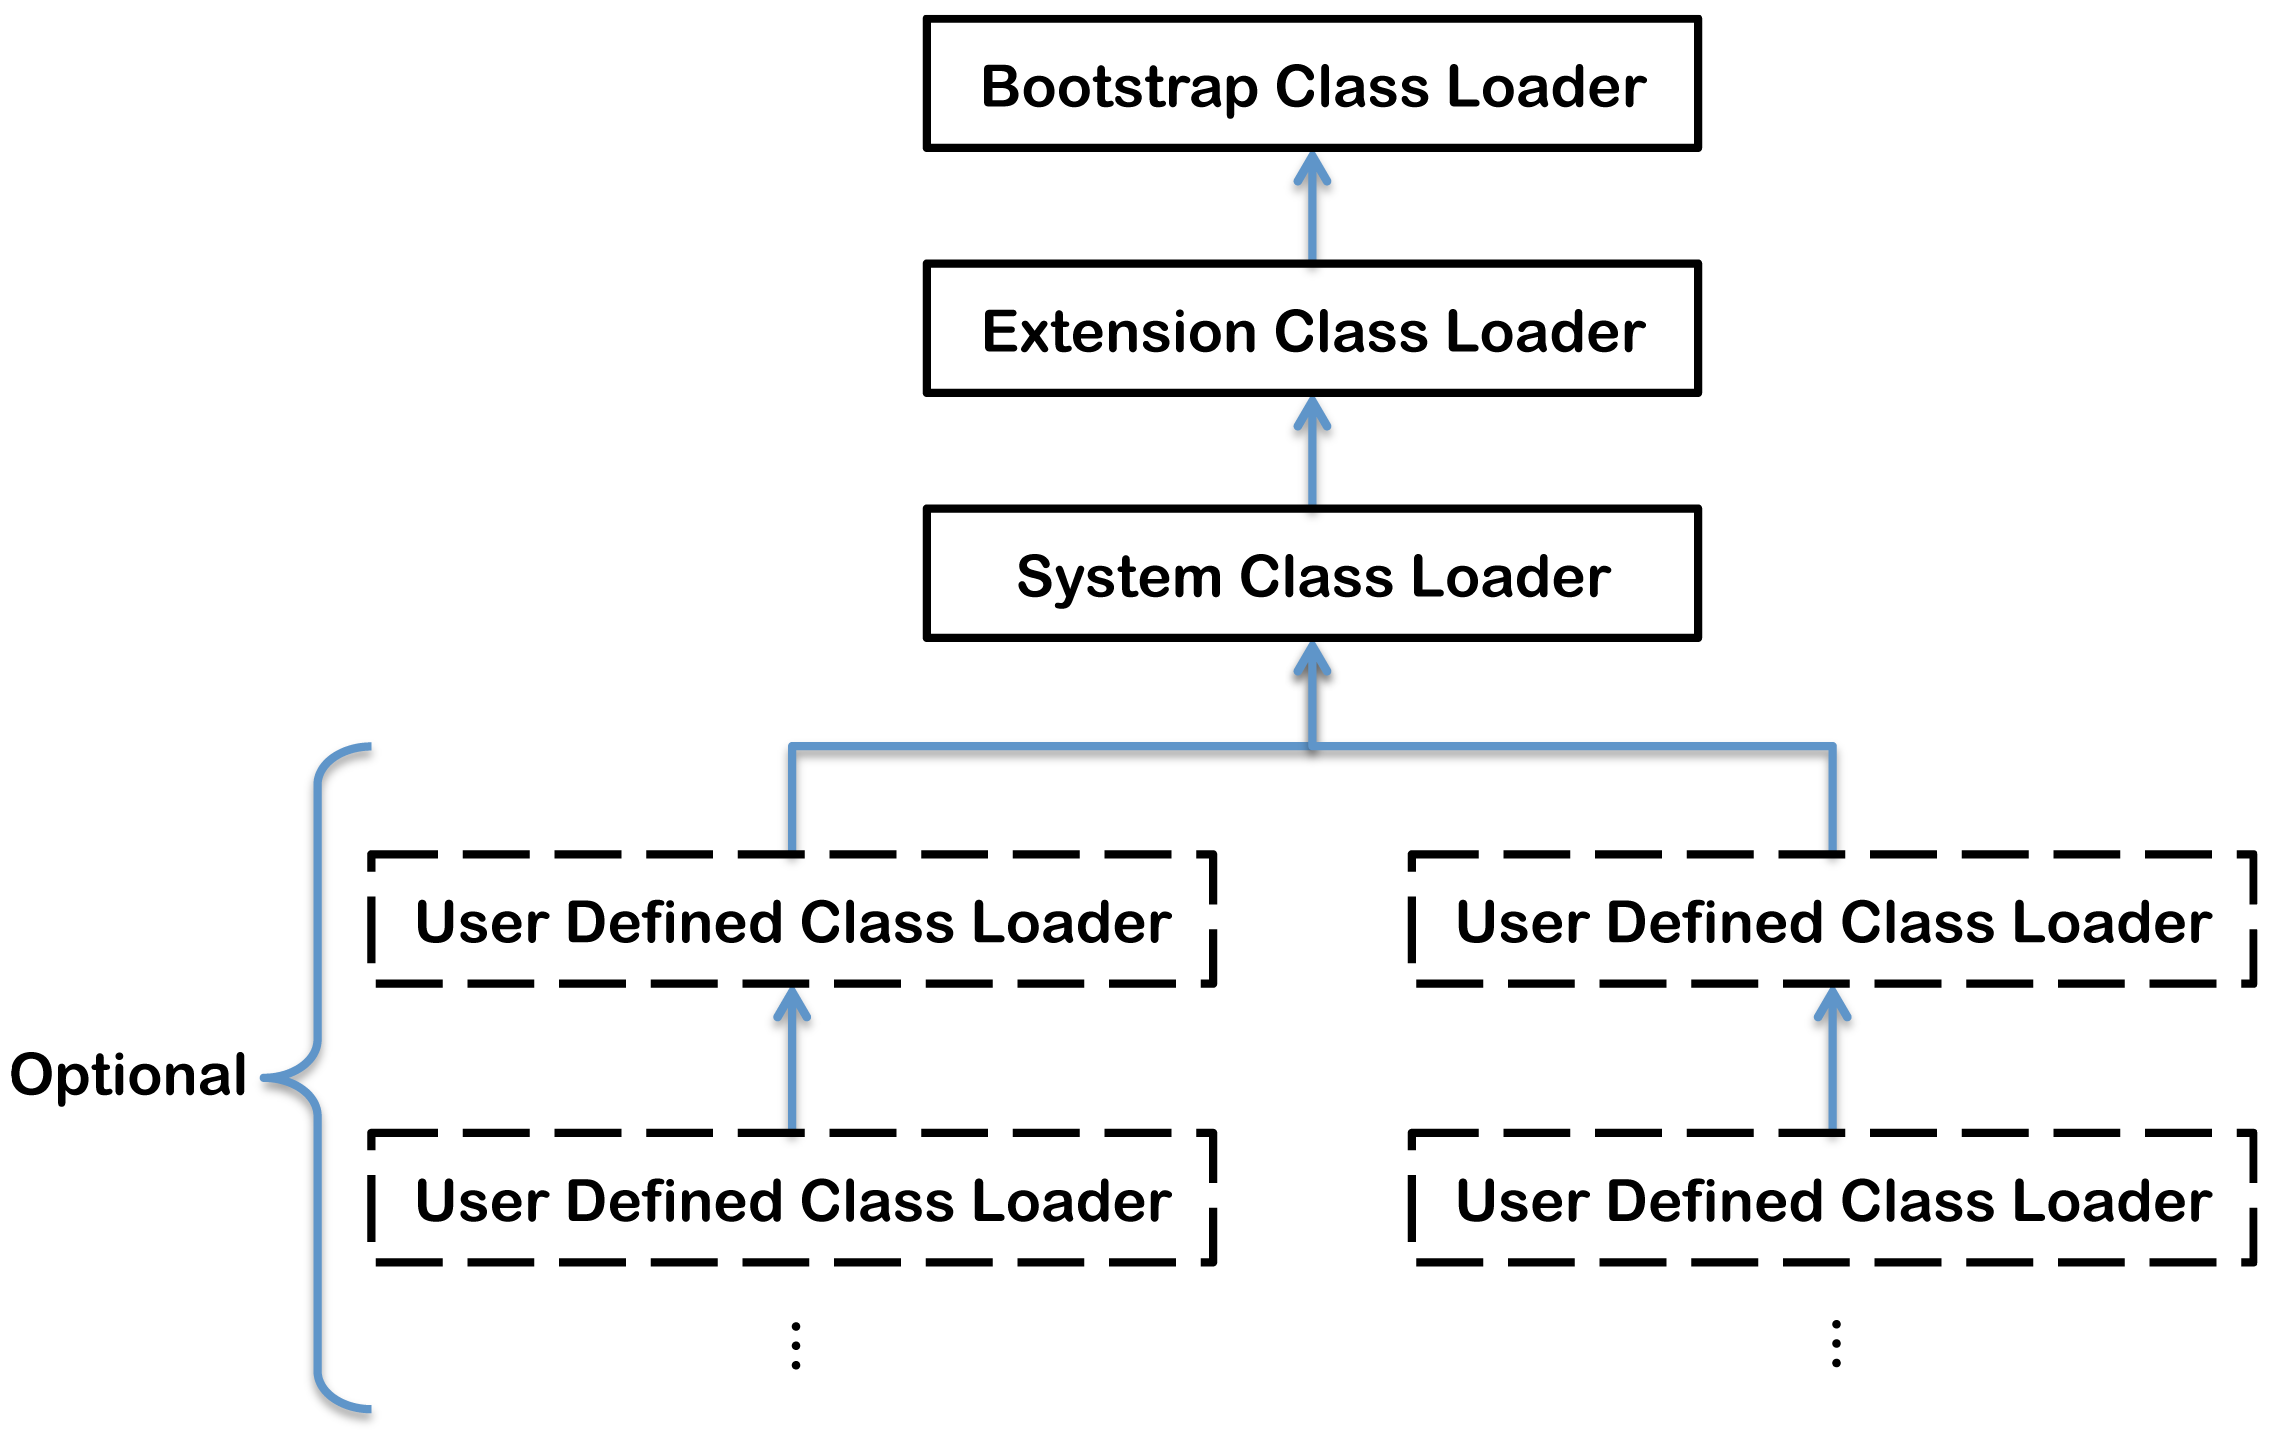 classloader hierarchy in the Java Virtual Machine (JVM)